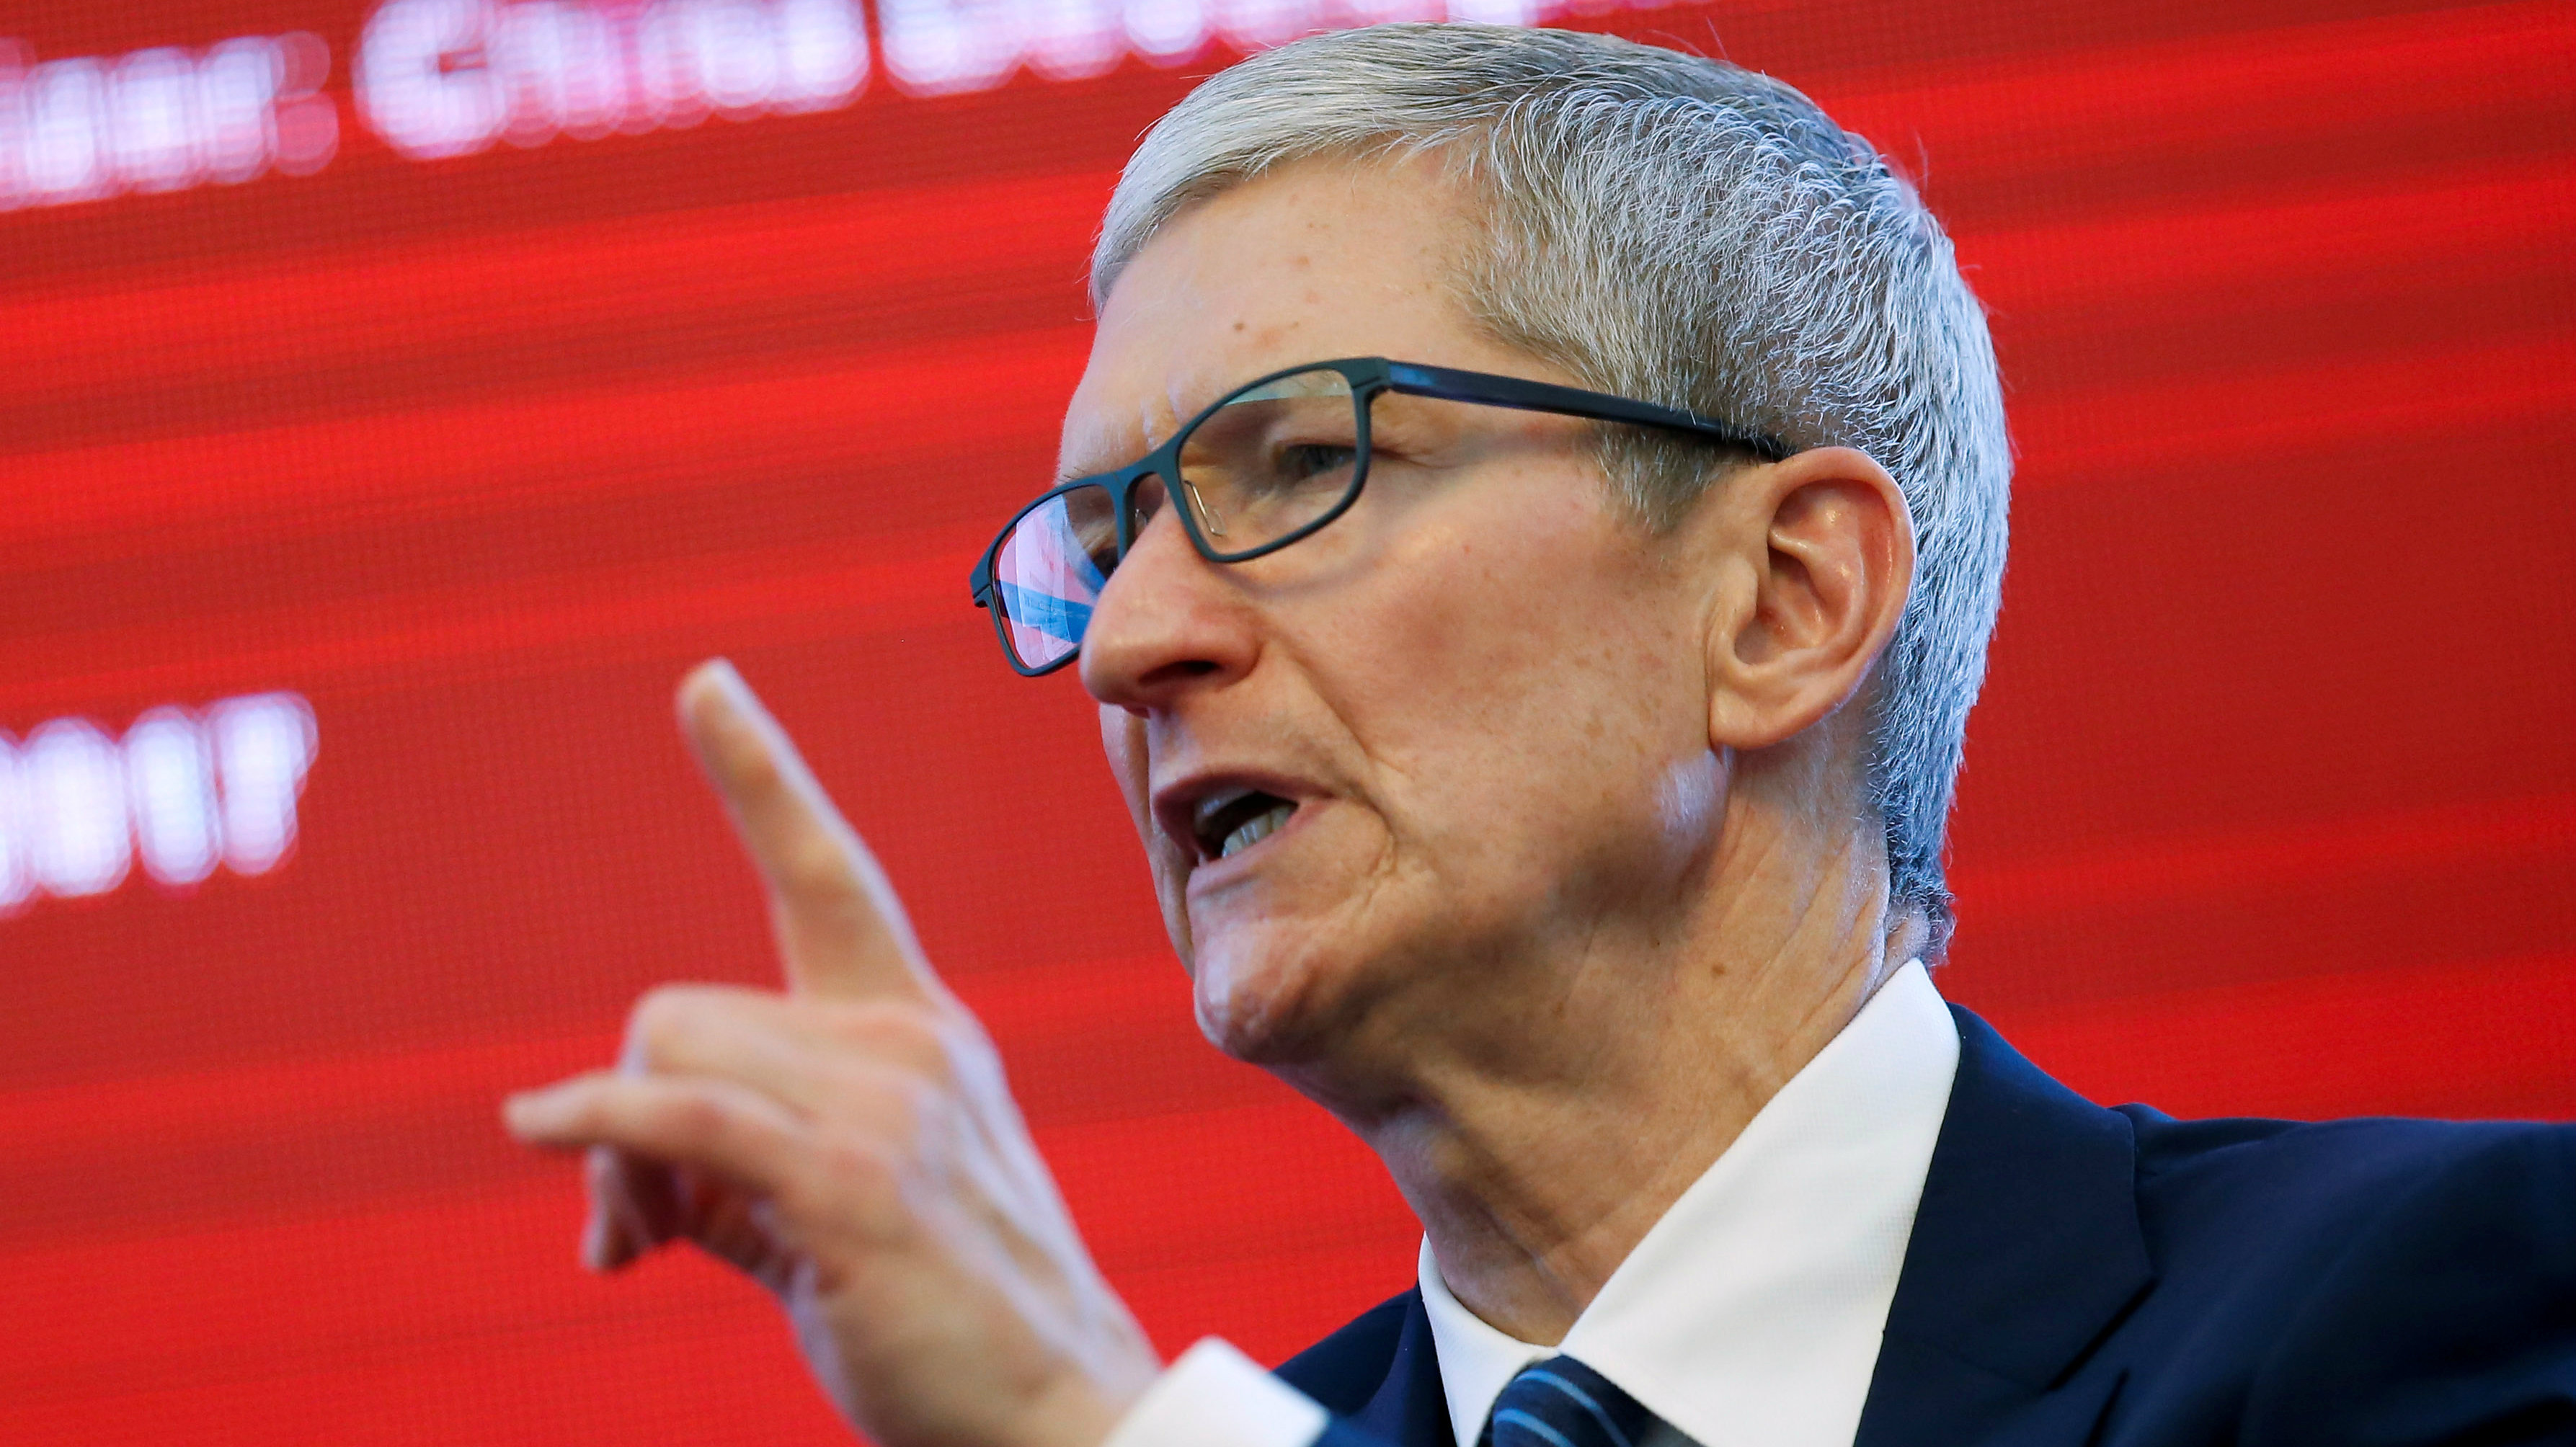 Apple's (AAPL) new App Store policies target Tencent's WeChat and